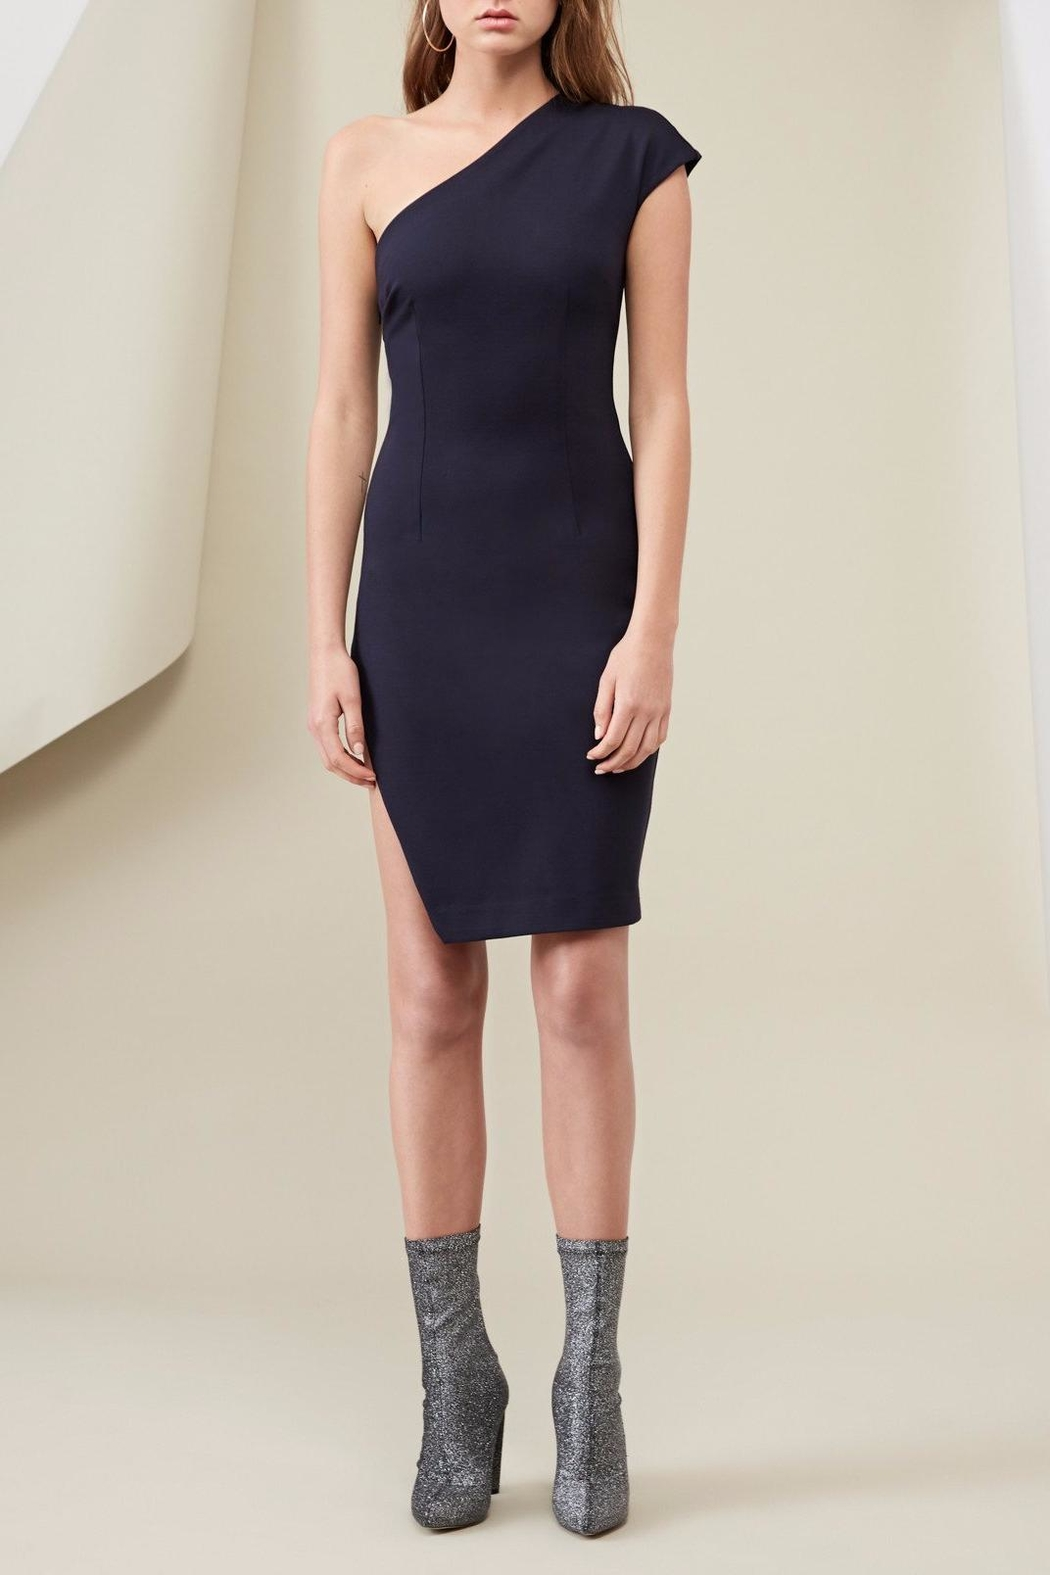 FINDERS Diagonal Dress Navy - Front Cropped Image